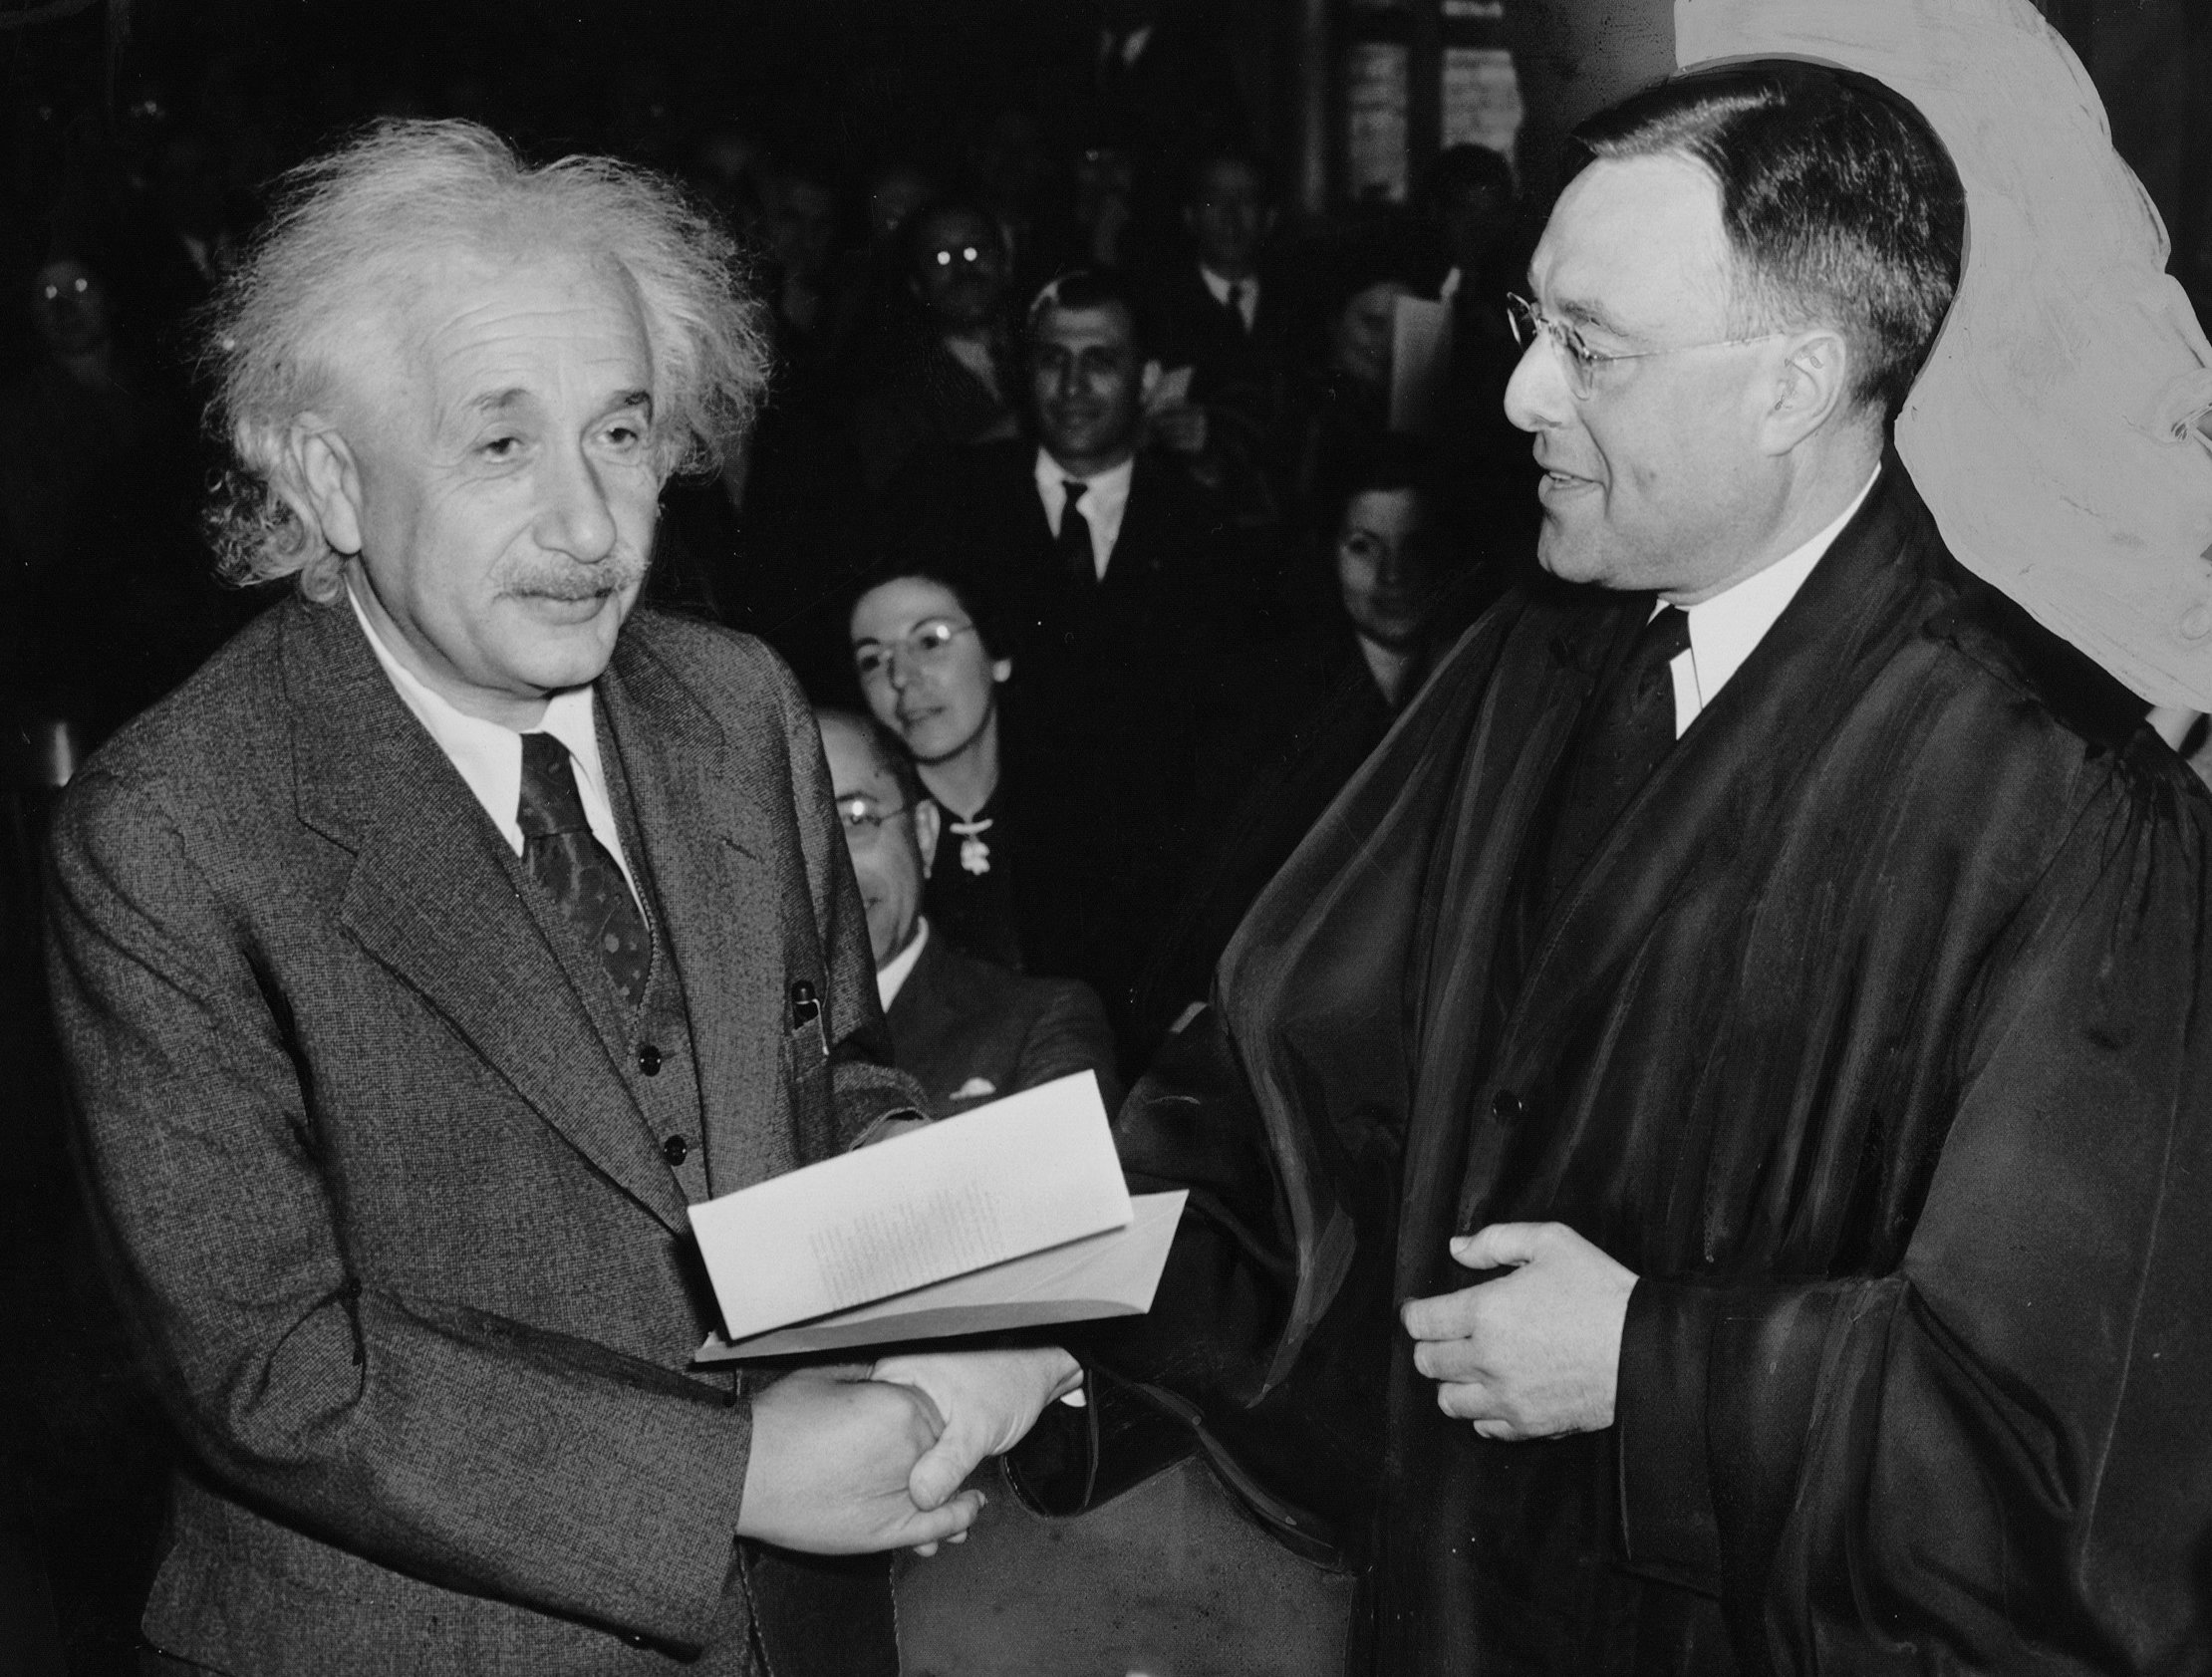 albert einstein writework english receiving from judge his certificate of american citizenship deutsch erhält von richter